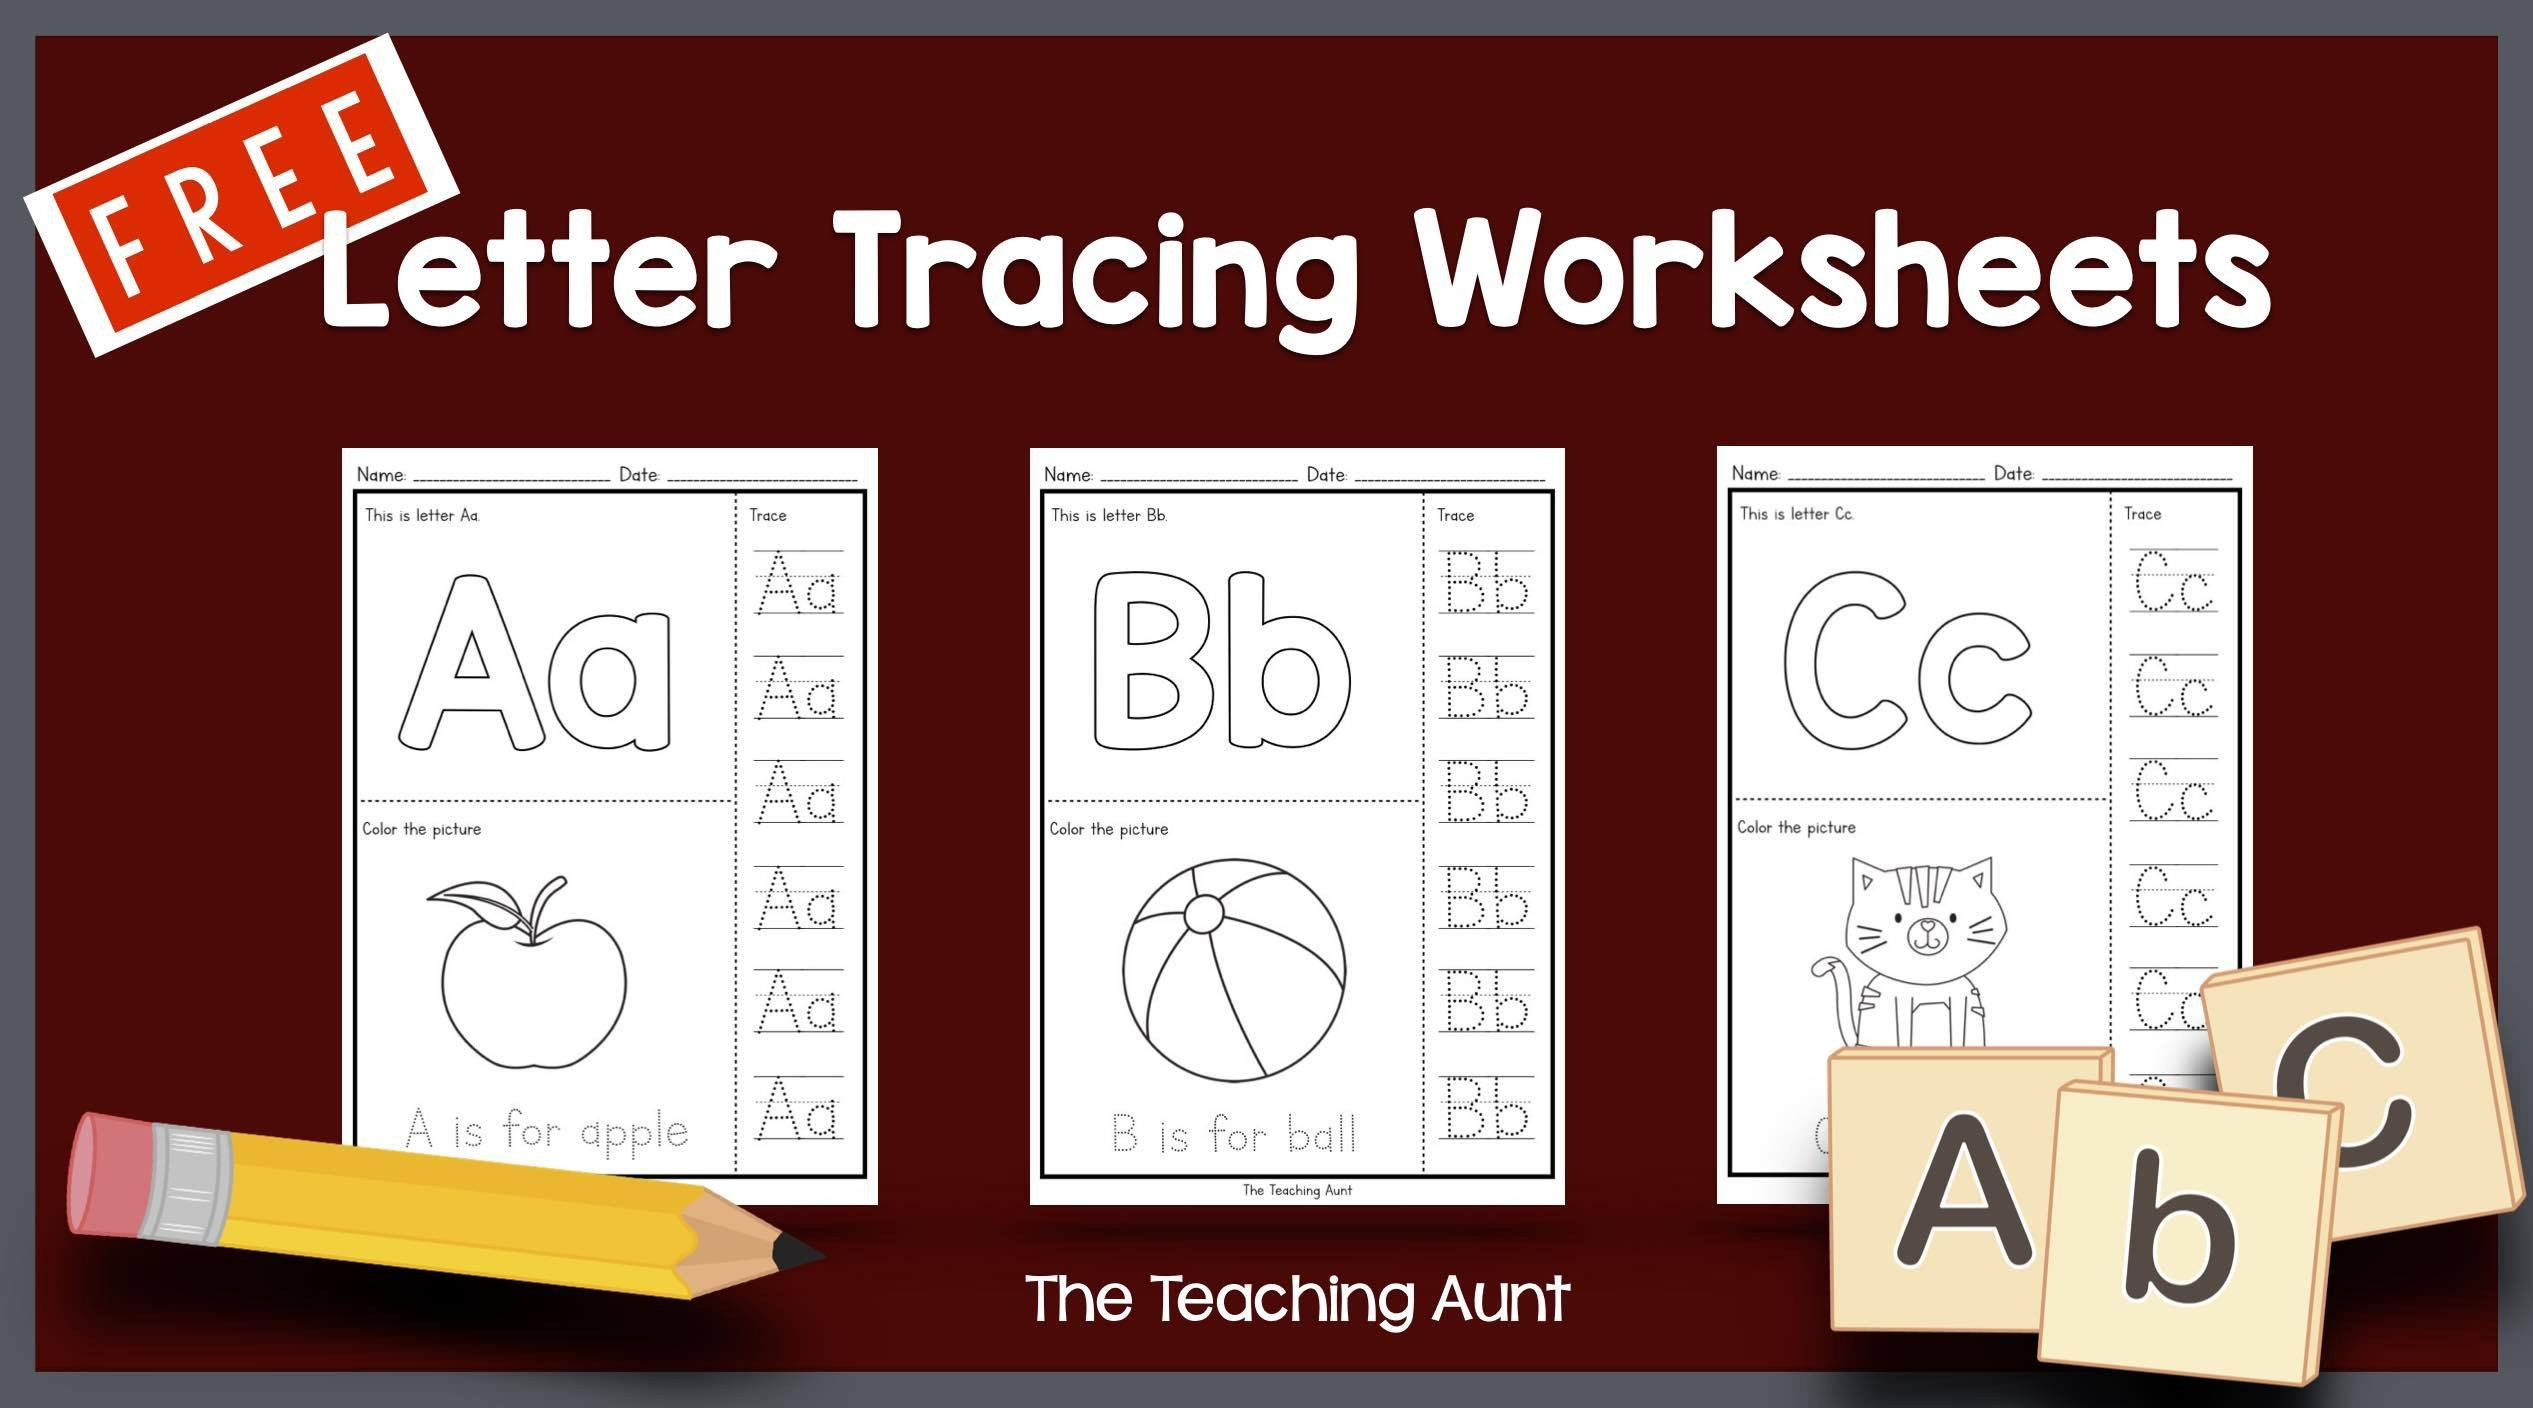 Free Letter Tracing Worksheets Pdf Letters Tracing Worksheets the Teaching Aunt